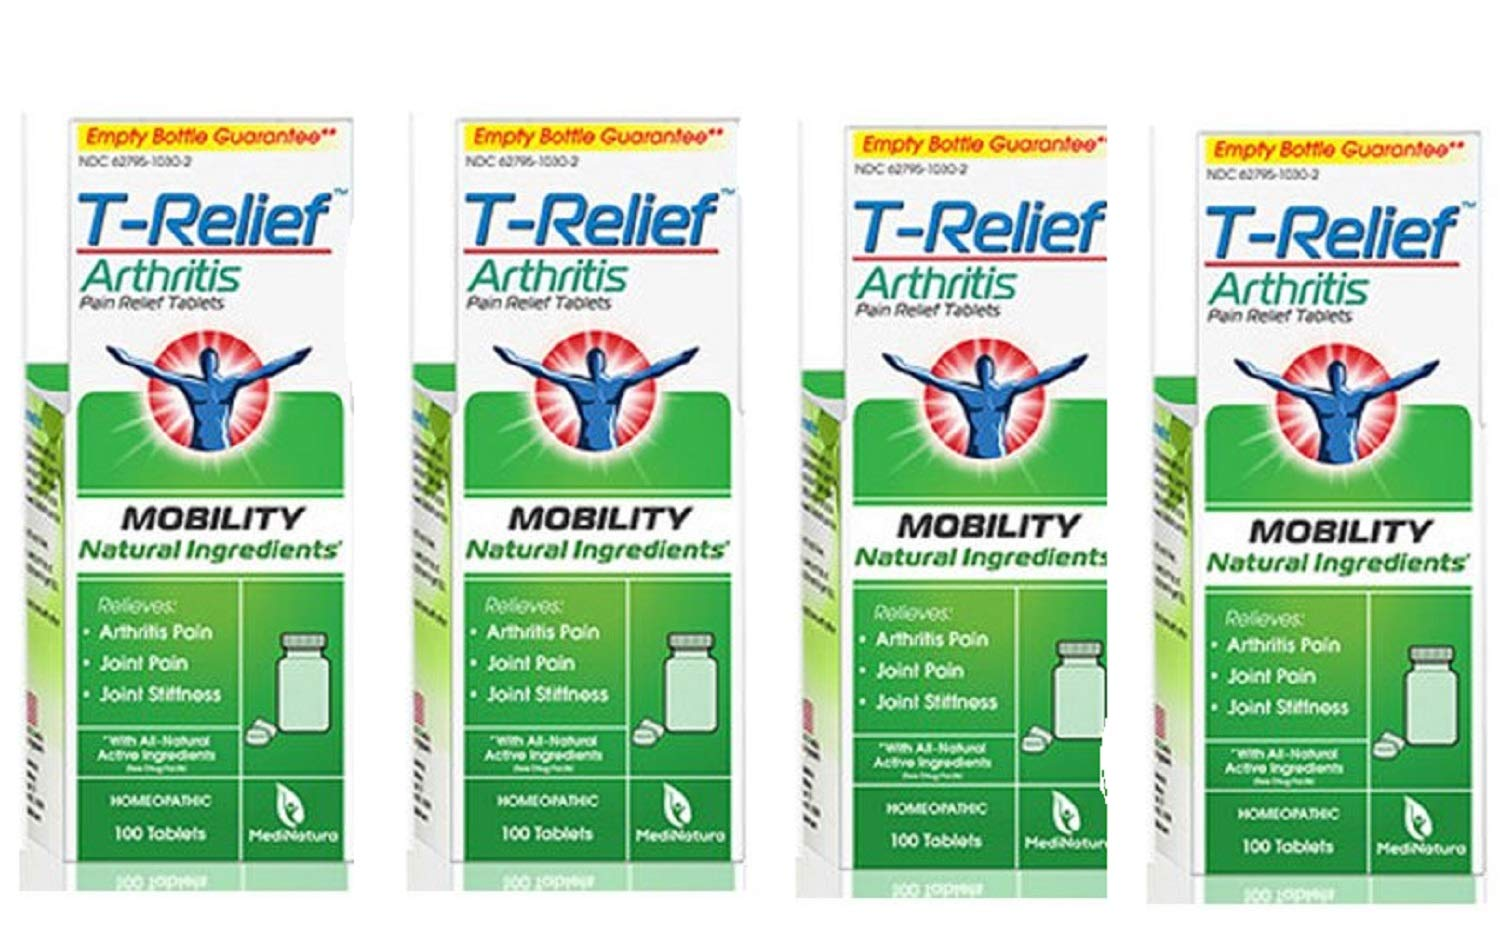 T-Relief Arthritis Pain Relief, 100 Tablets (Pack of 4) by T-Relief